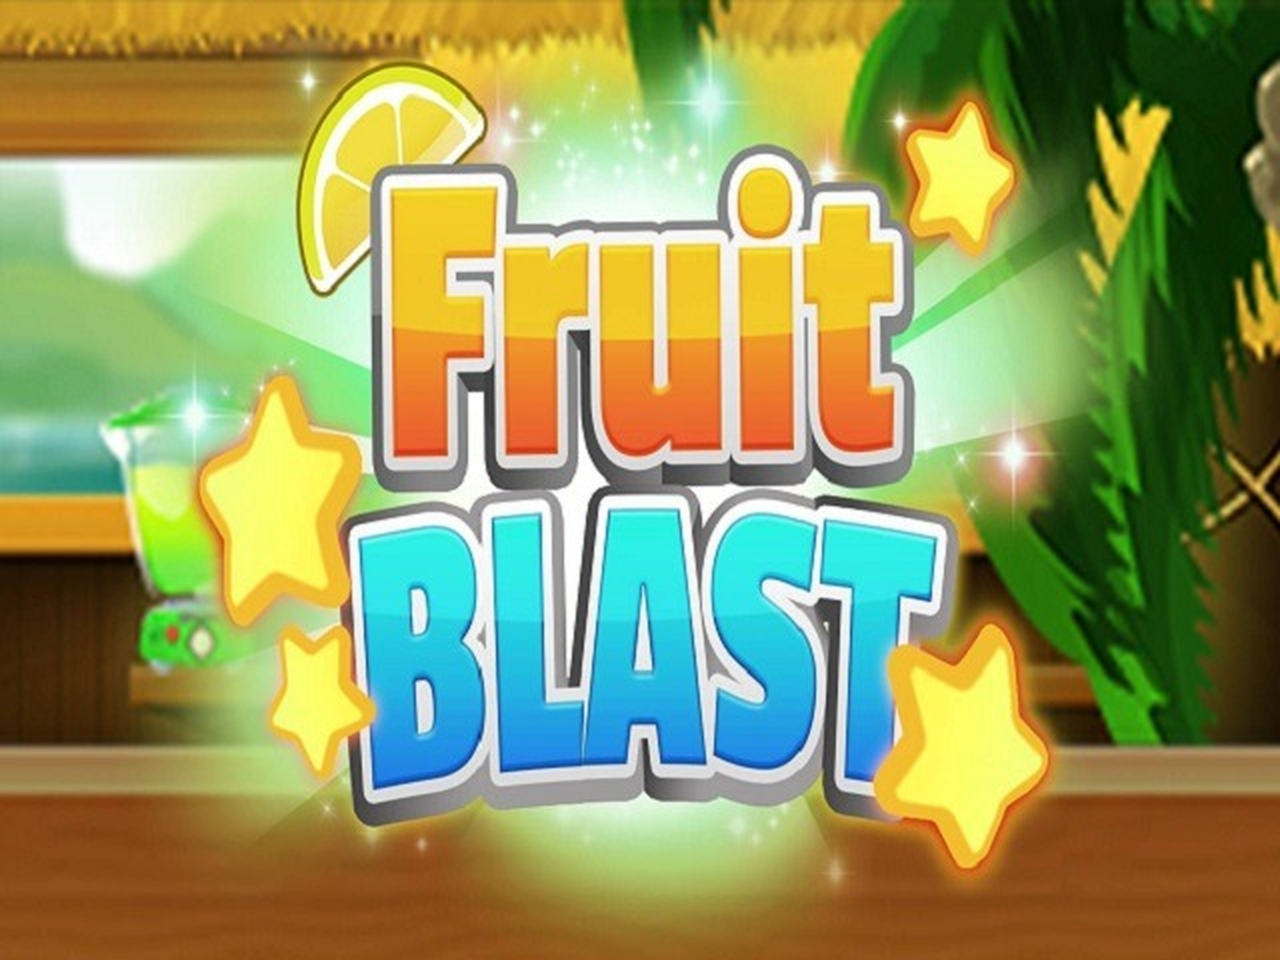 Se Fruit Blast Online Slot Demo Game, Skillzzgaming